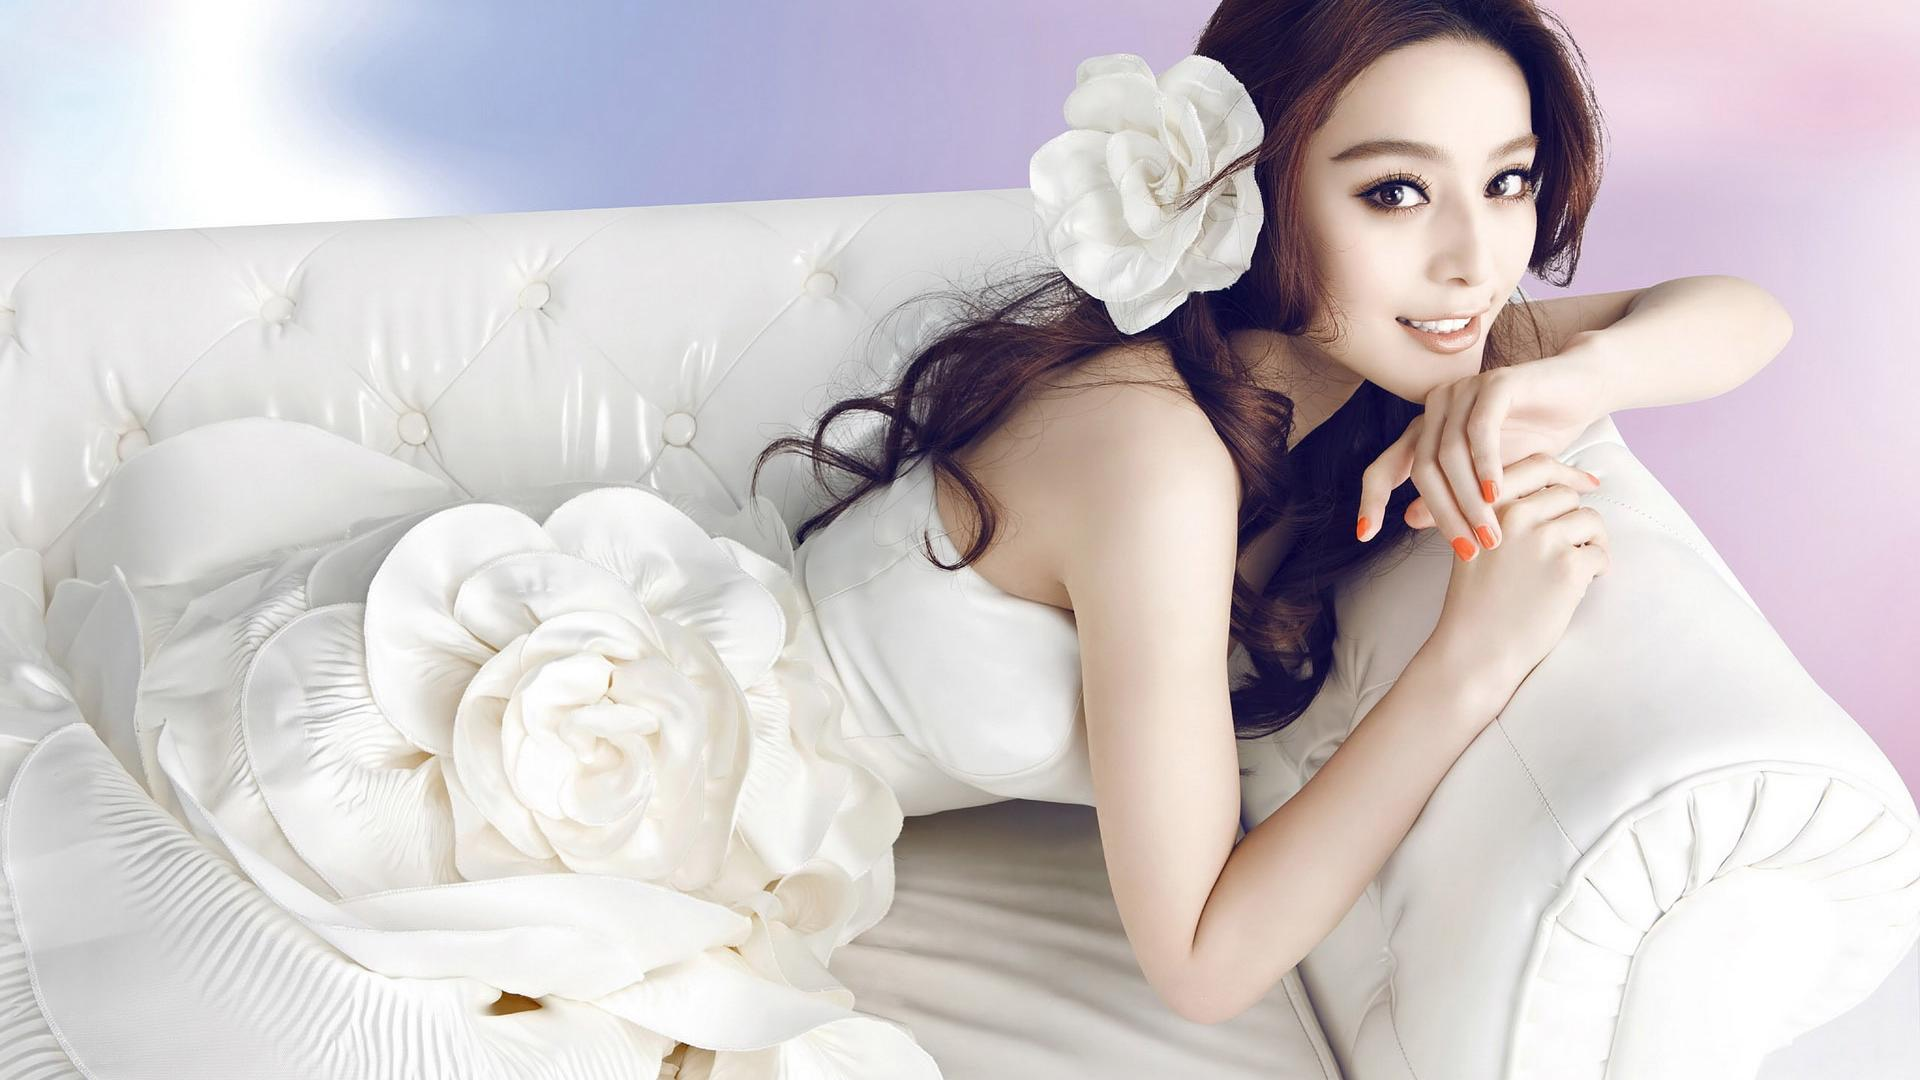 bridal-hd-wallpapers-white-dressing1